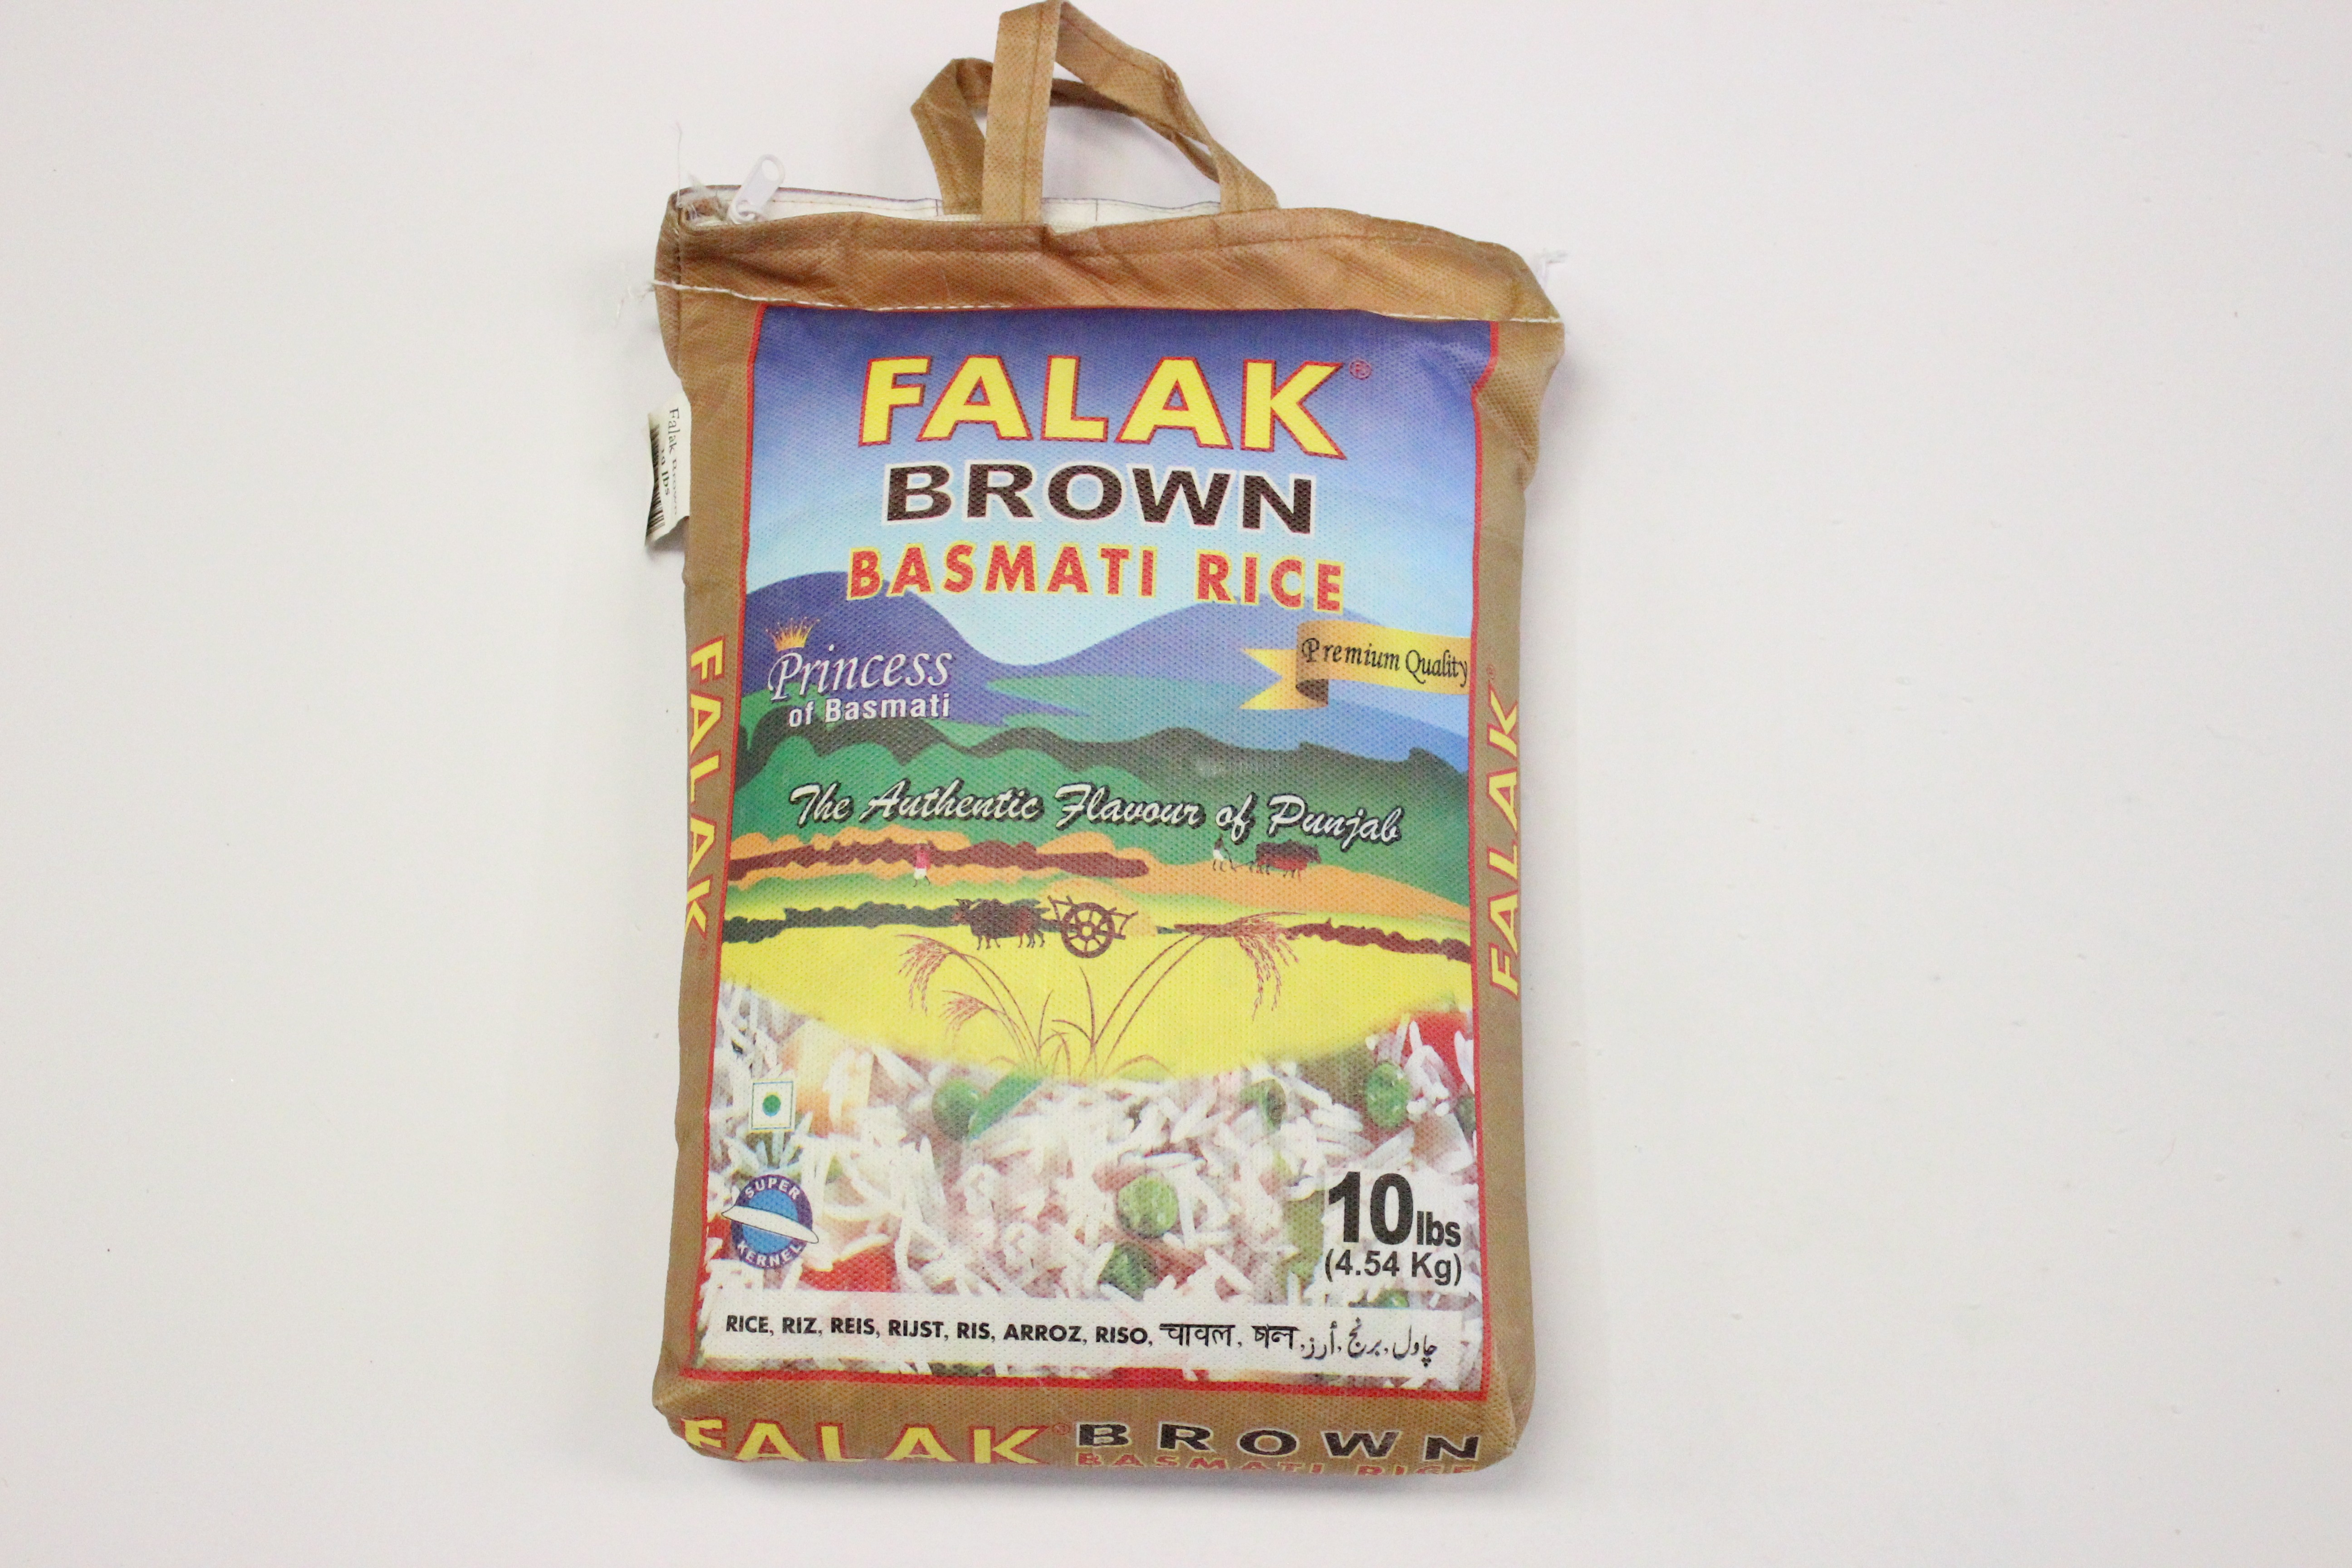 Falak Brown Basmati Rice 10lb